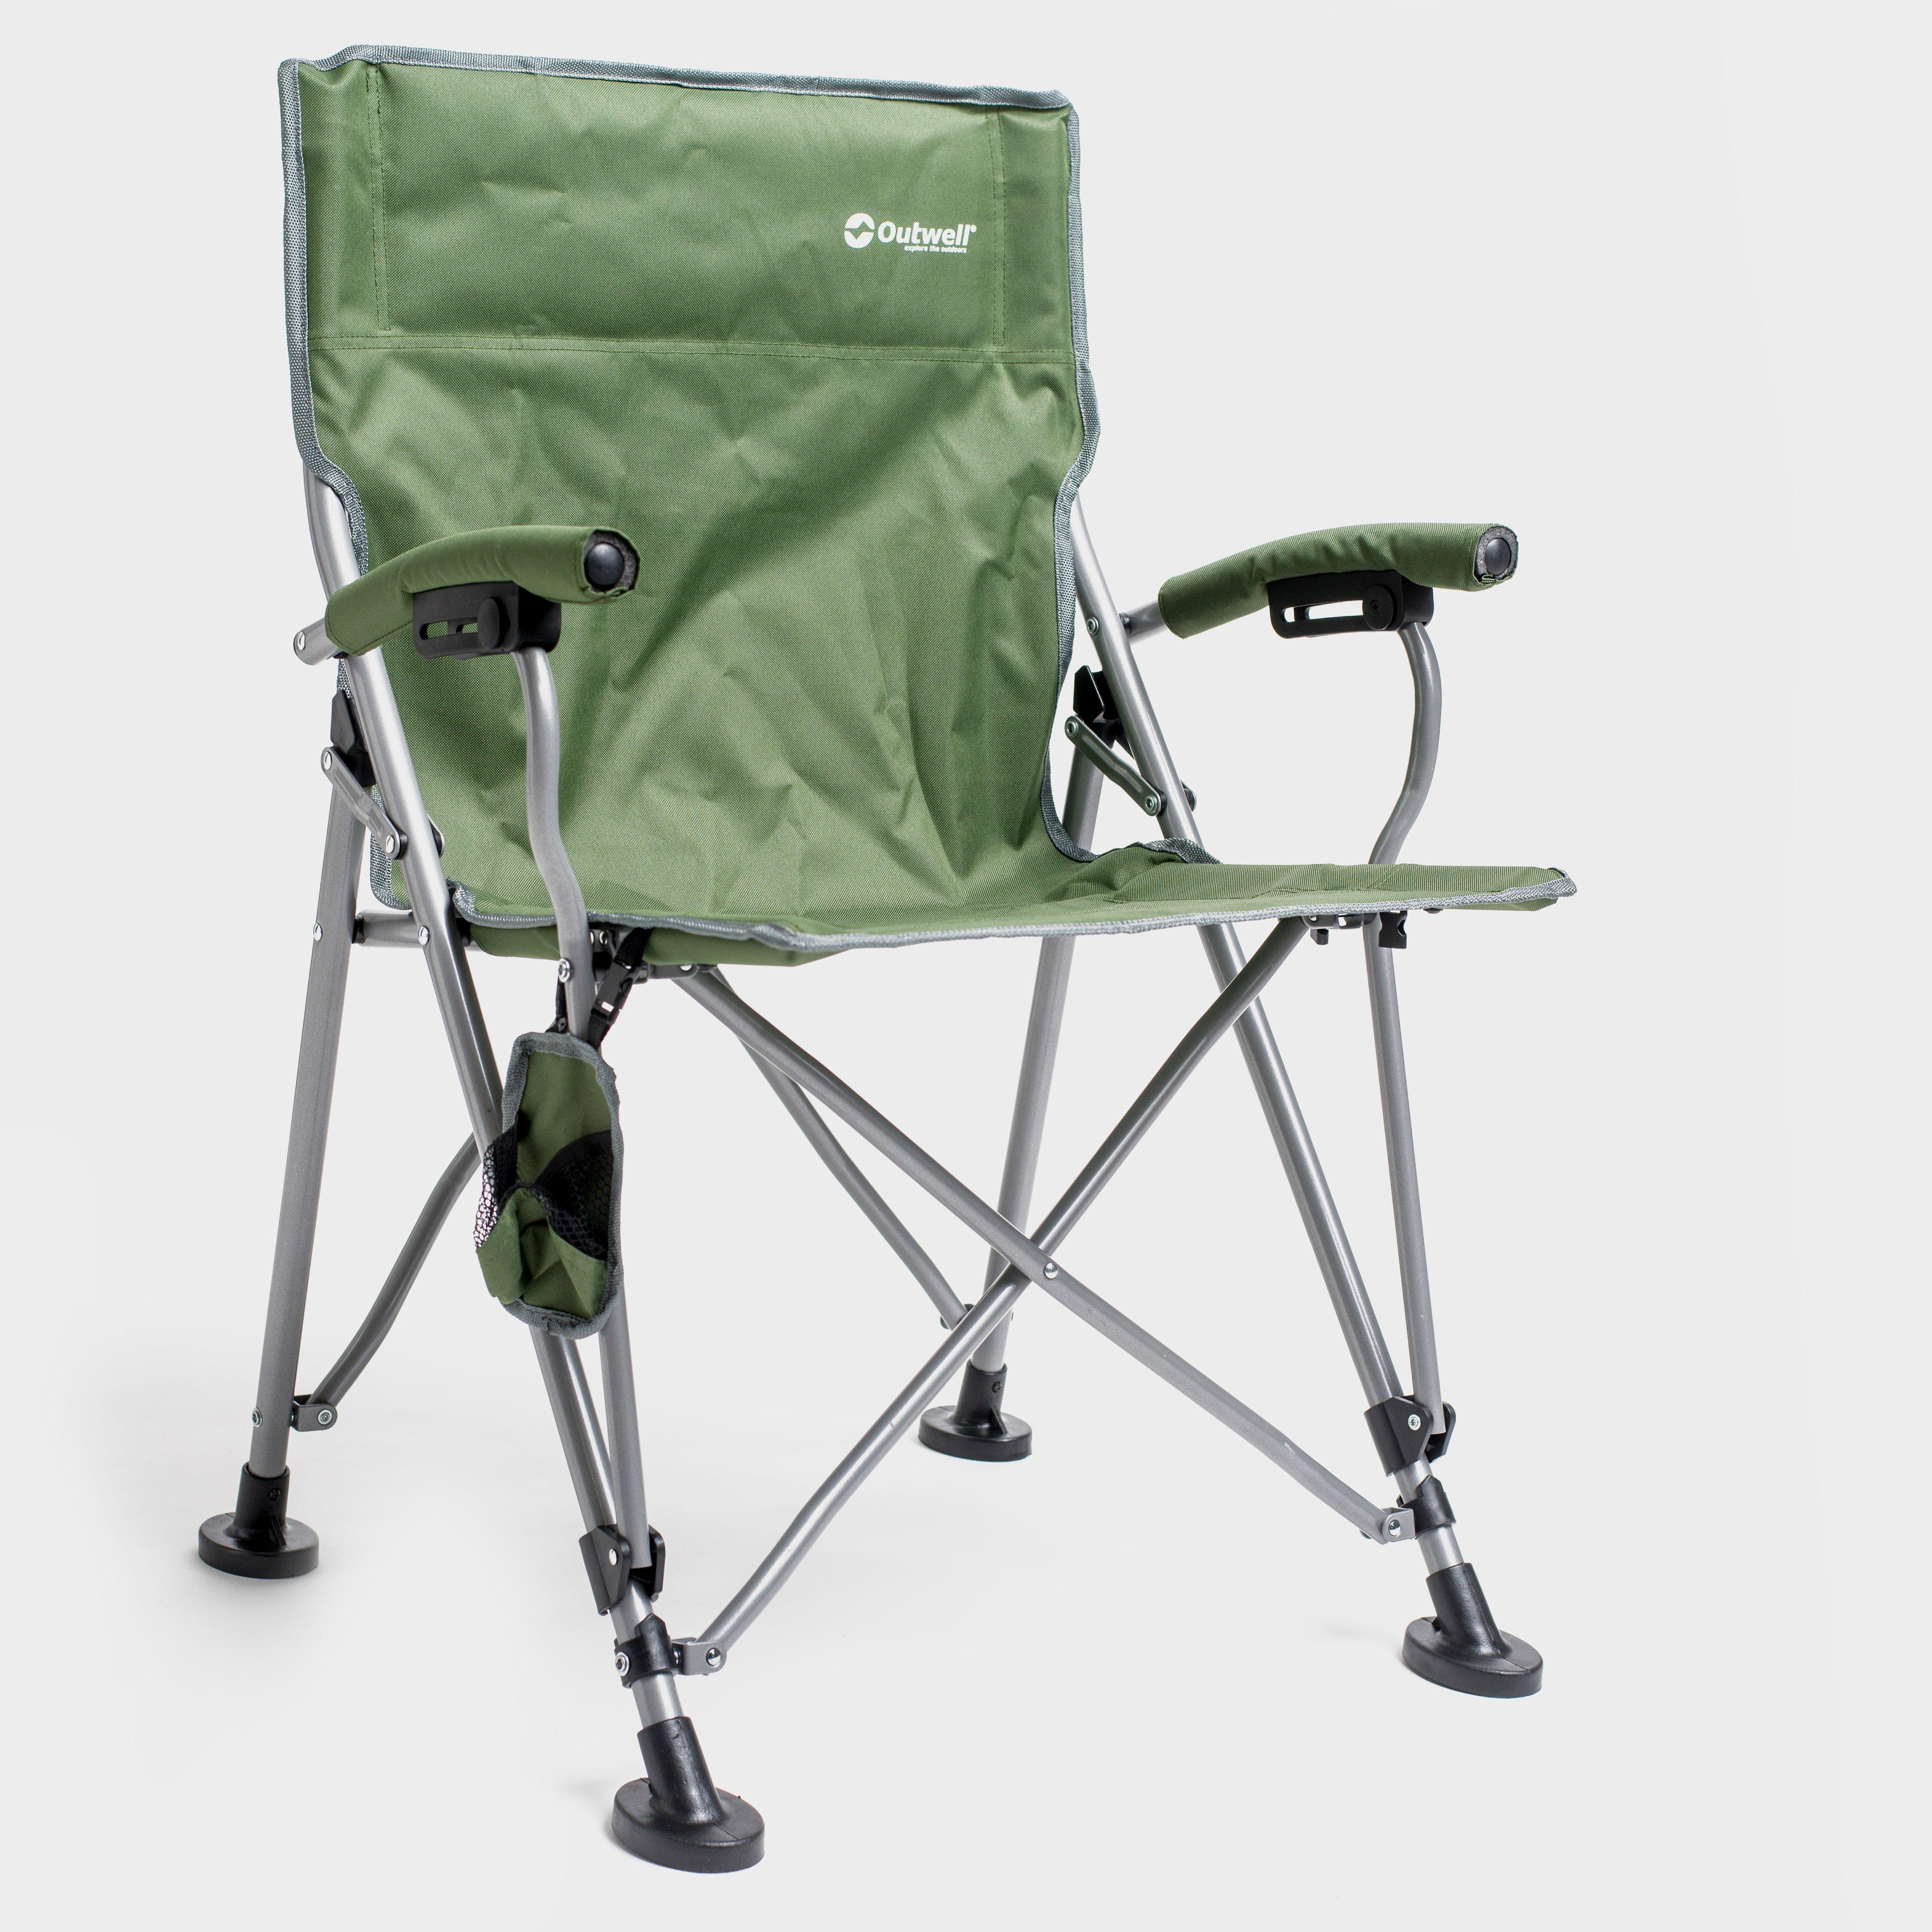 Outwell Eston Camping Chair